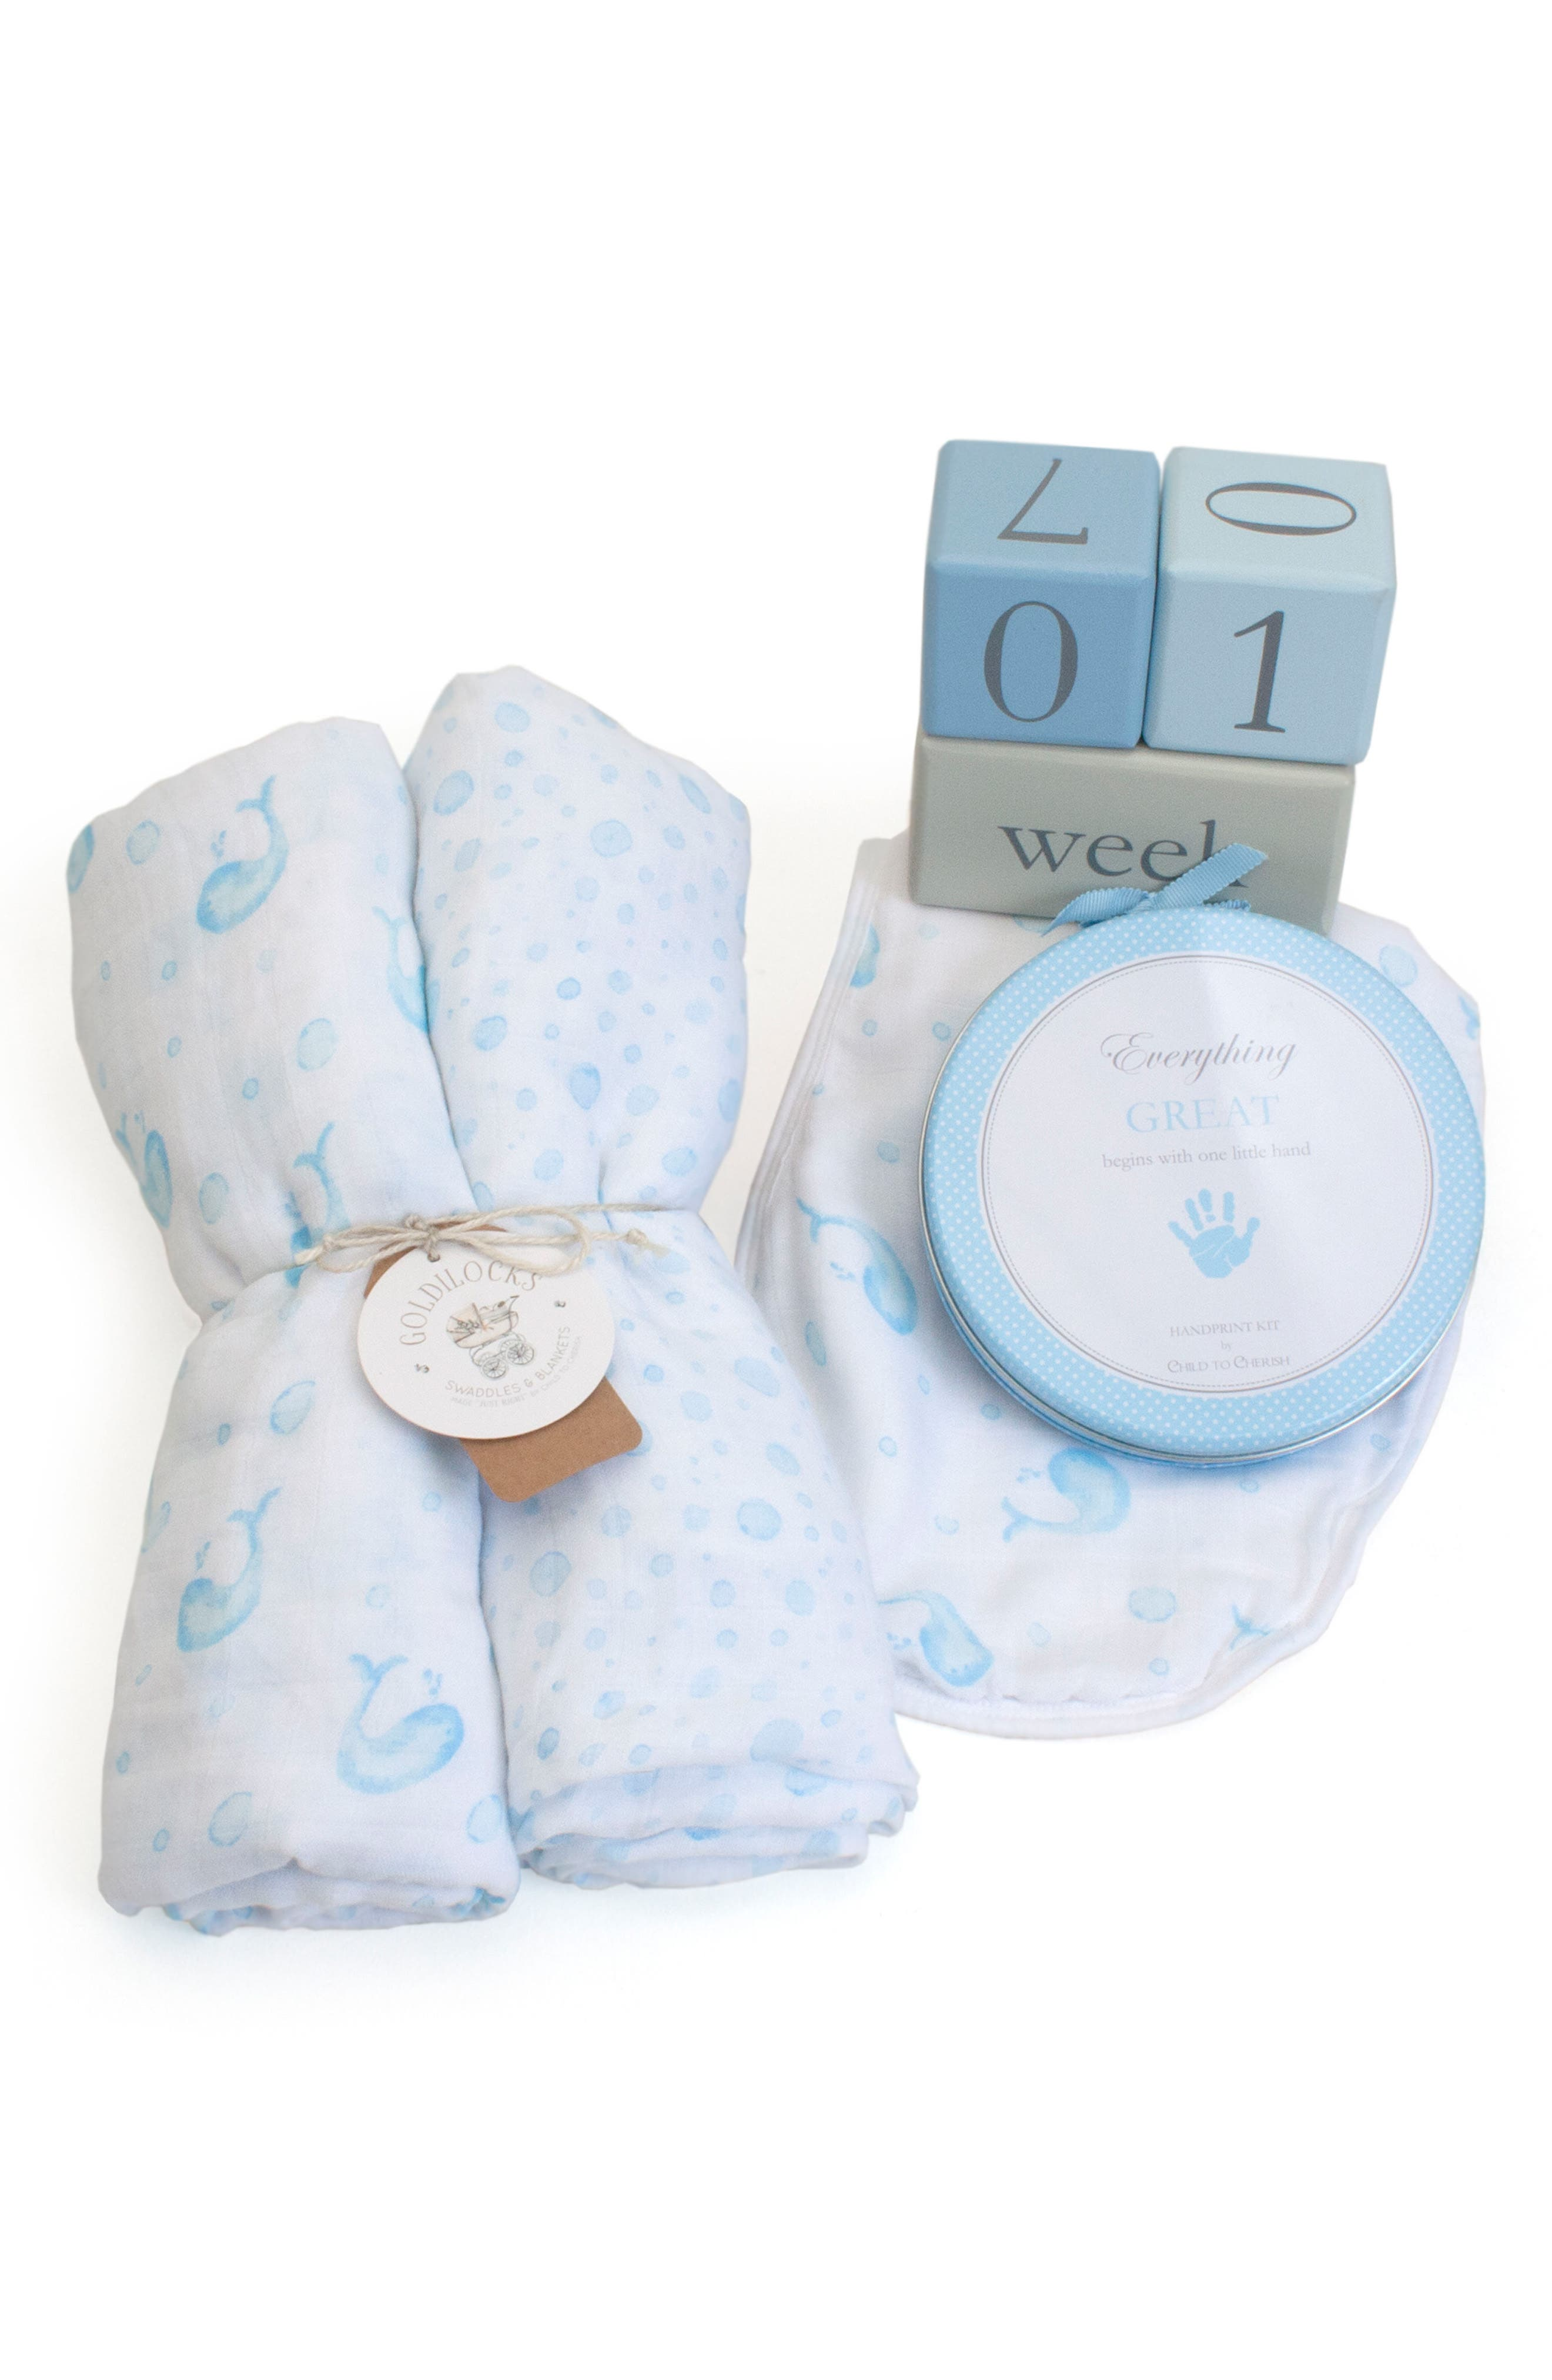 Bubbles & Whales Goldilocks Swaddle, Handprint & Photo Block Gift Set,                             Main thumbnail 1, color,                             Blue Whale/ Bubbles